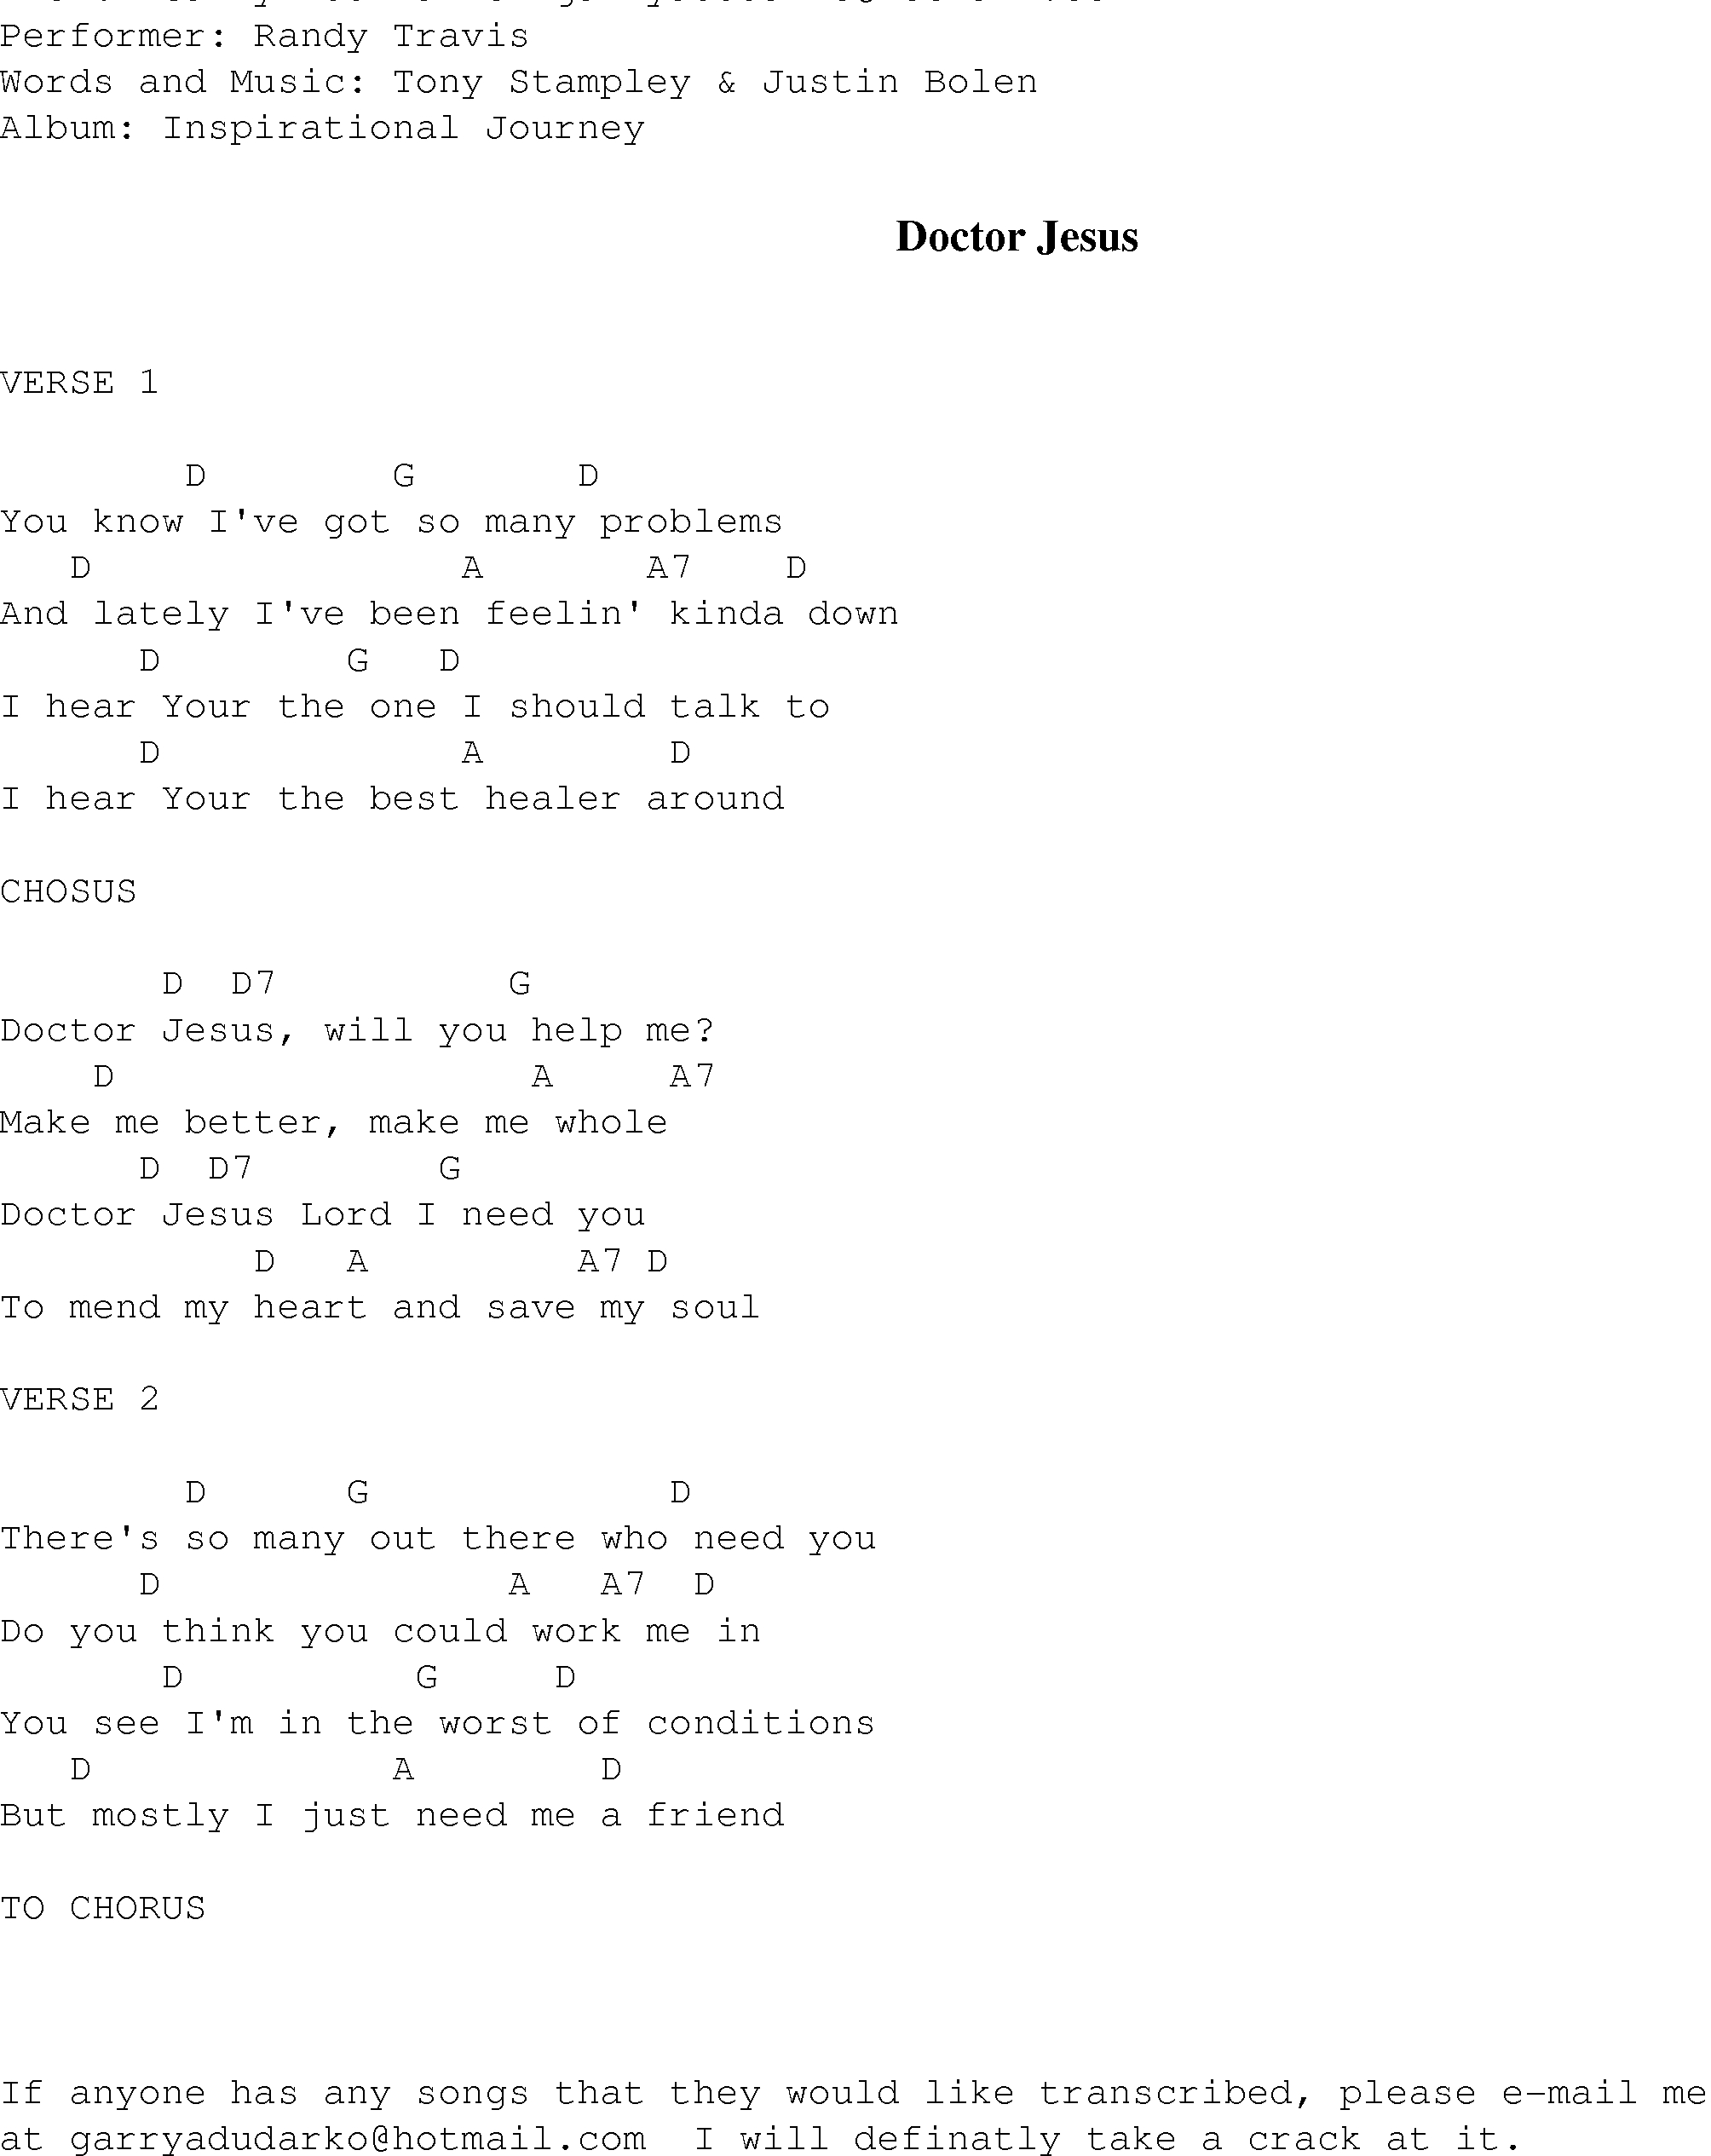 Lord I Need You Chords Doctor Jesus Christian Gospel Song Lyrics And Chords